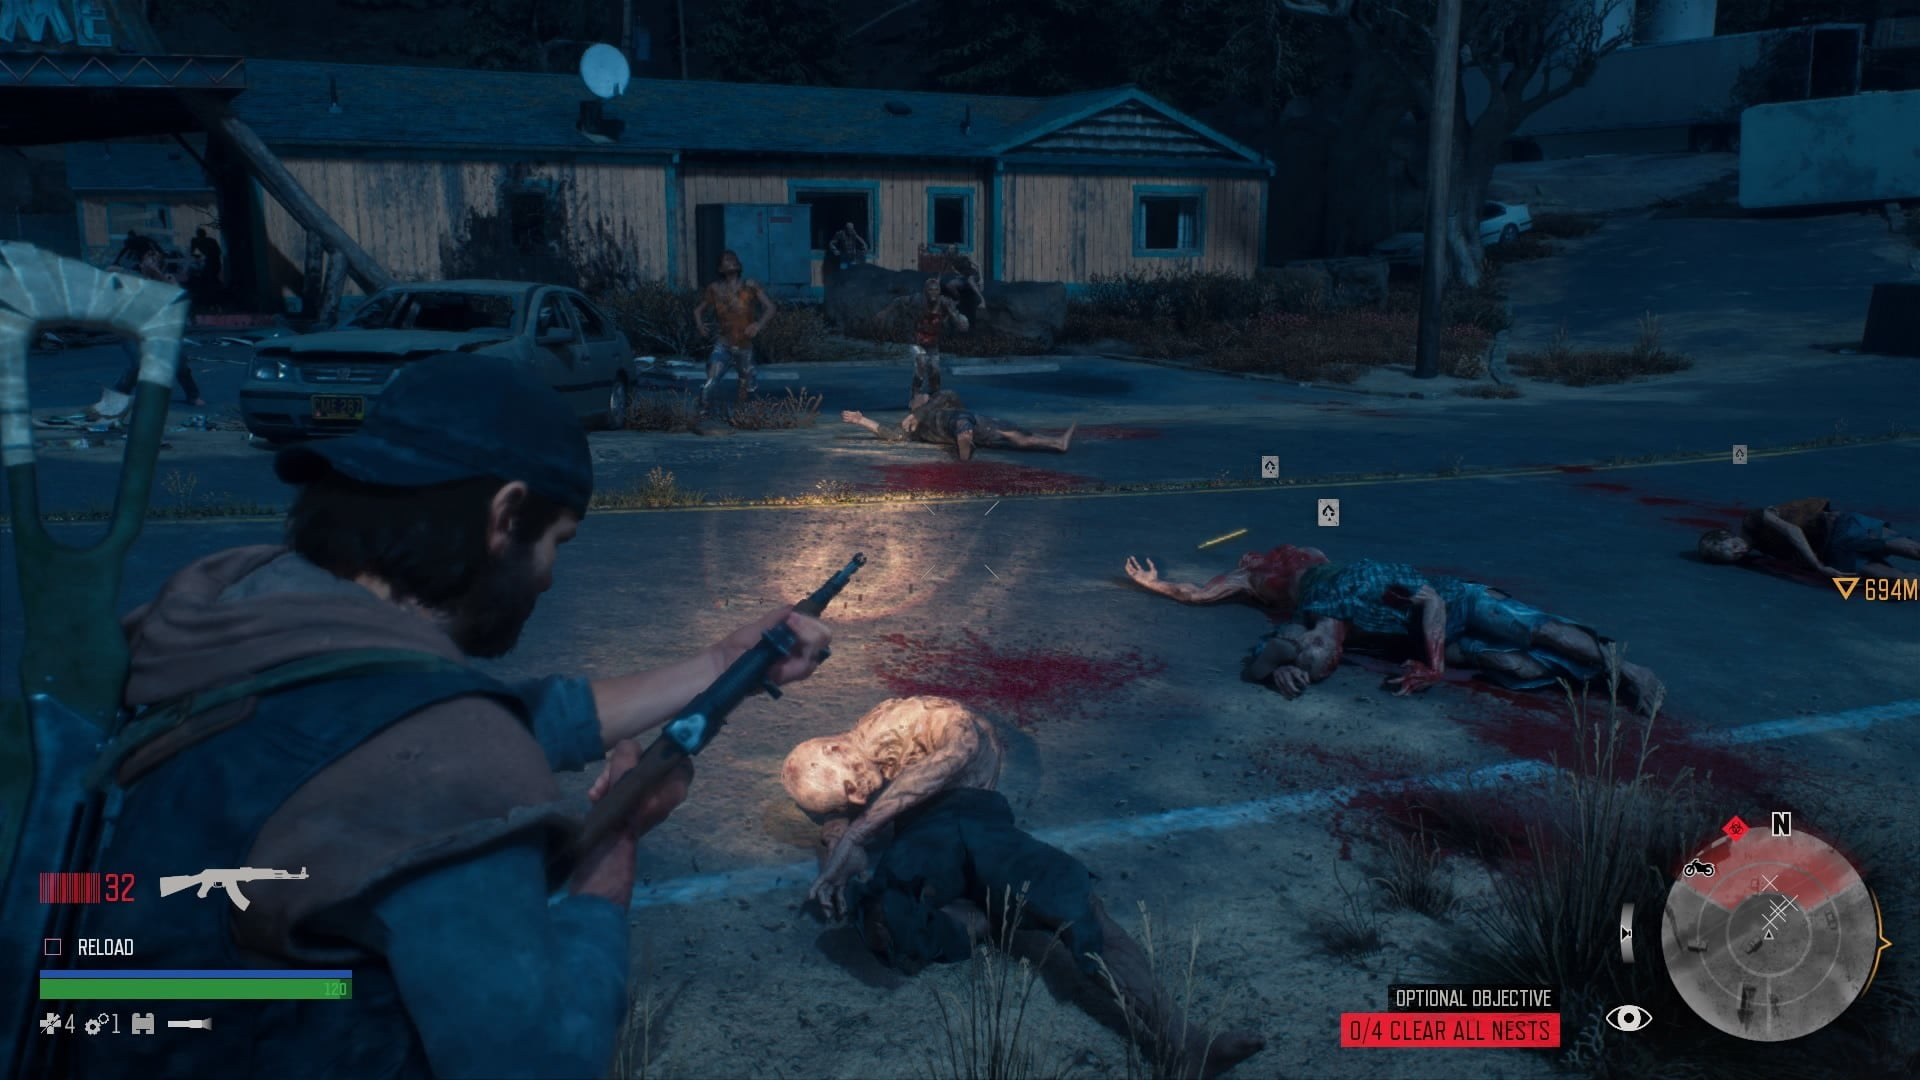 Days Gone: Tips and Tricks for Beginners Entering the Postapocalypse